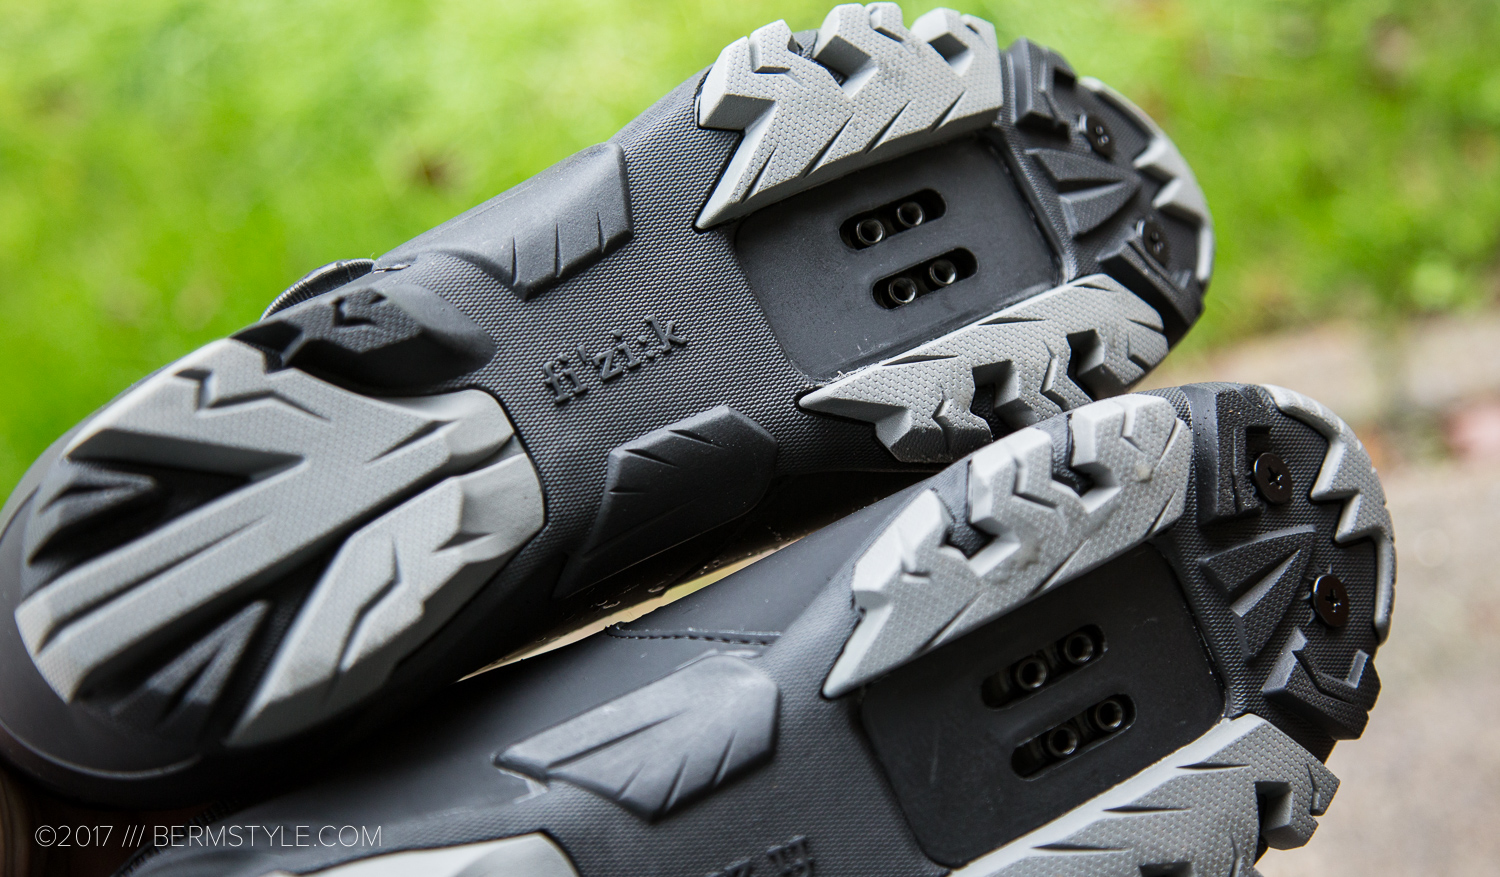 NEW Fizik M6B Uomo Black Mountain Bike Shoes